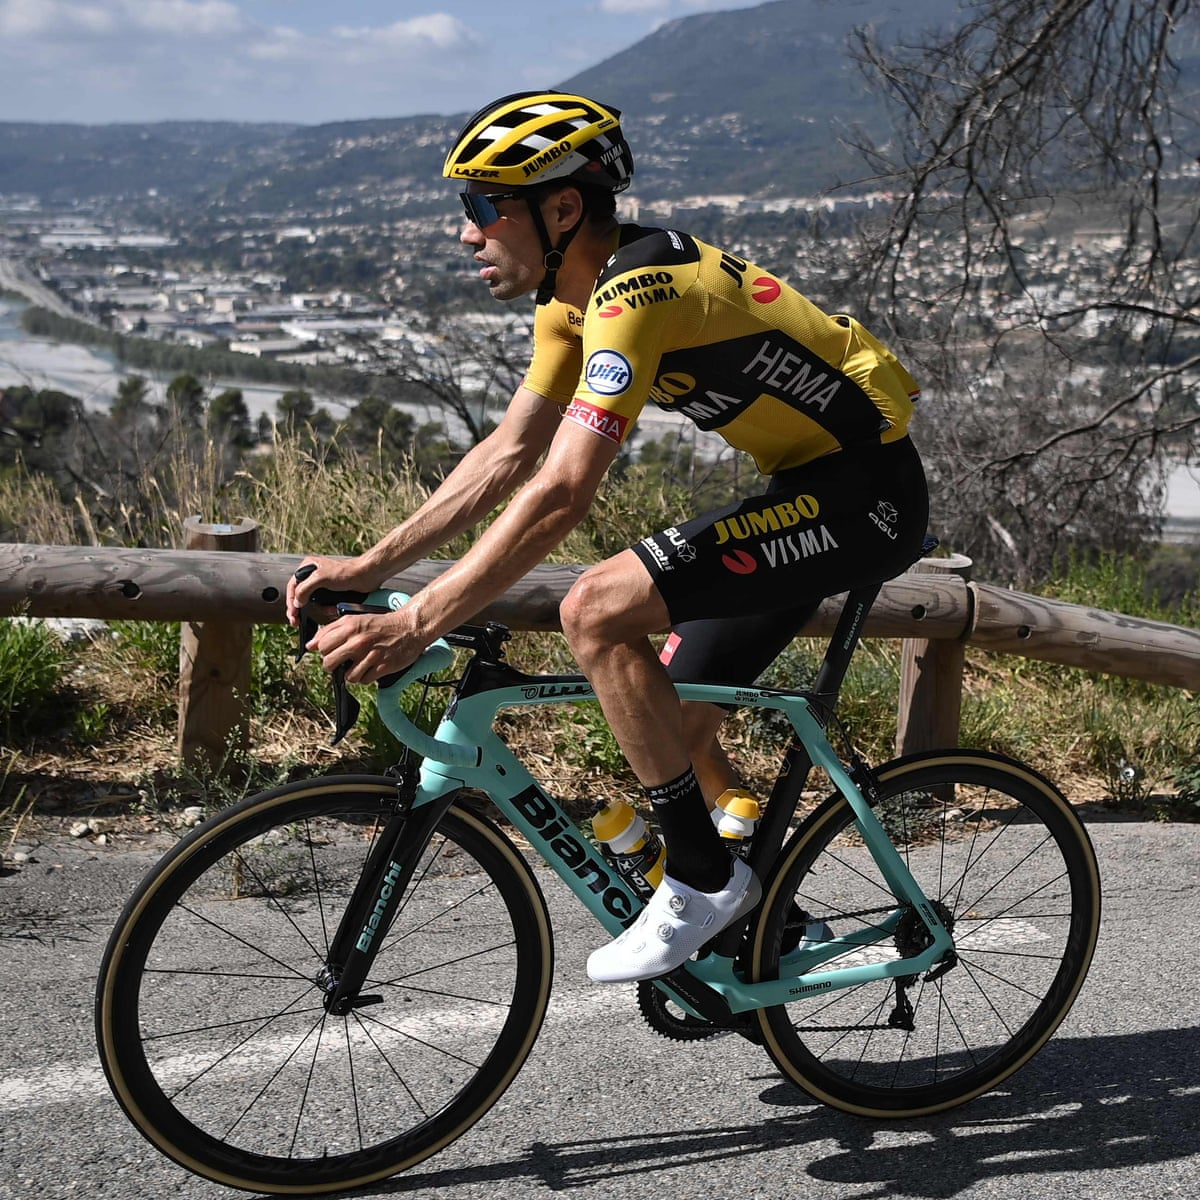 Tour De France In Doubt After Covid Red Alert Issued Before Grand Depart In Nice Tour De France The Guardian